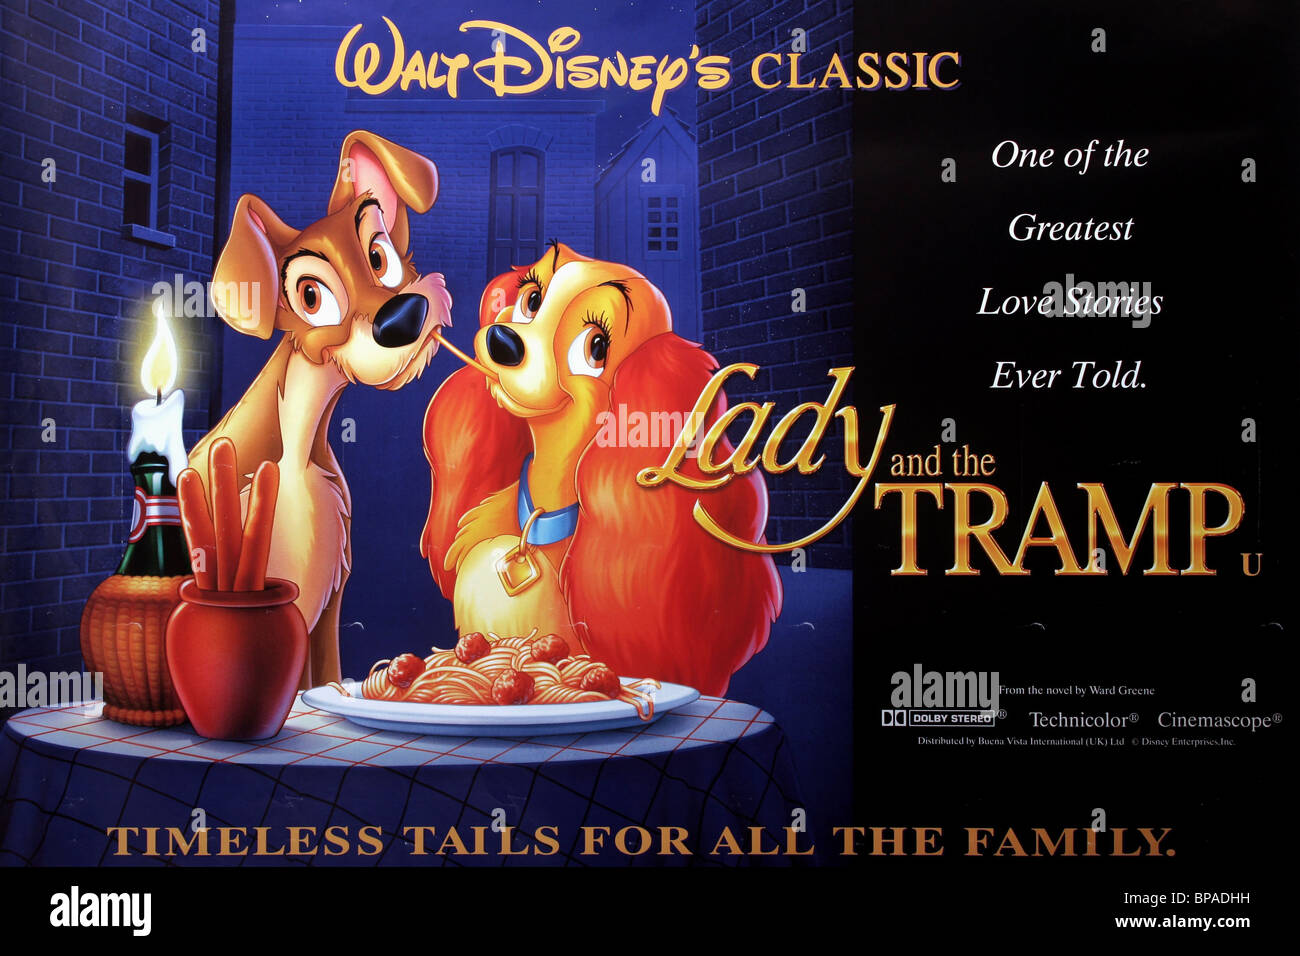 Disney Lady And The Tramp Movie High Resolution Stock Photography And Images Alamy